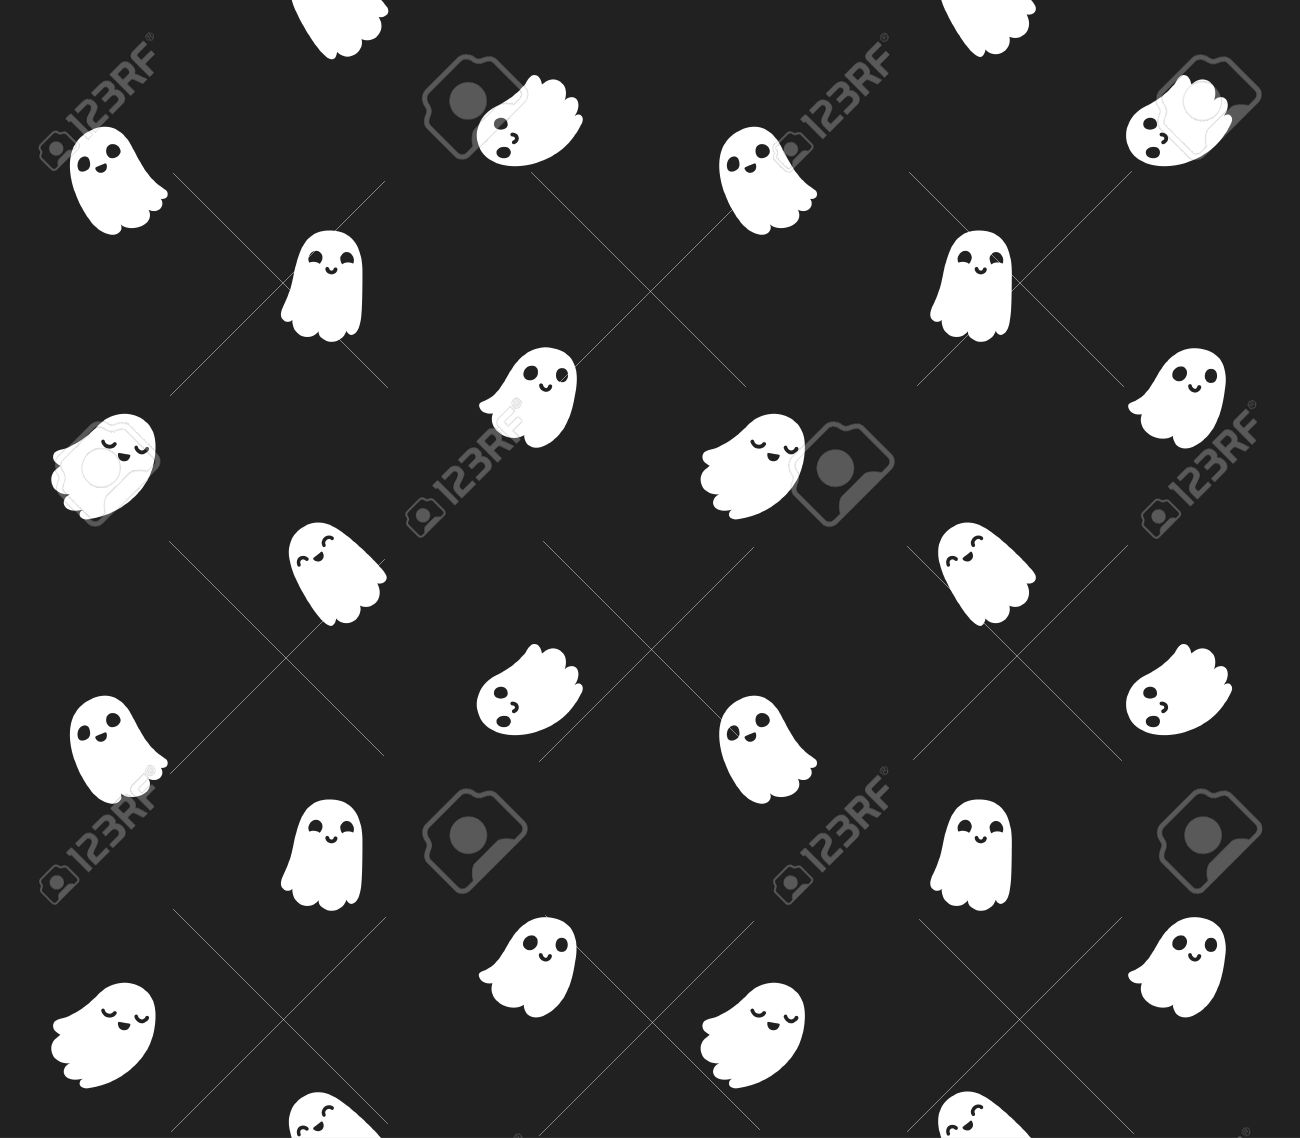 Download 4800 Background Black Cute HD Terbaik